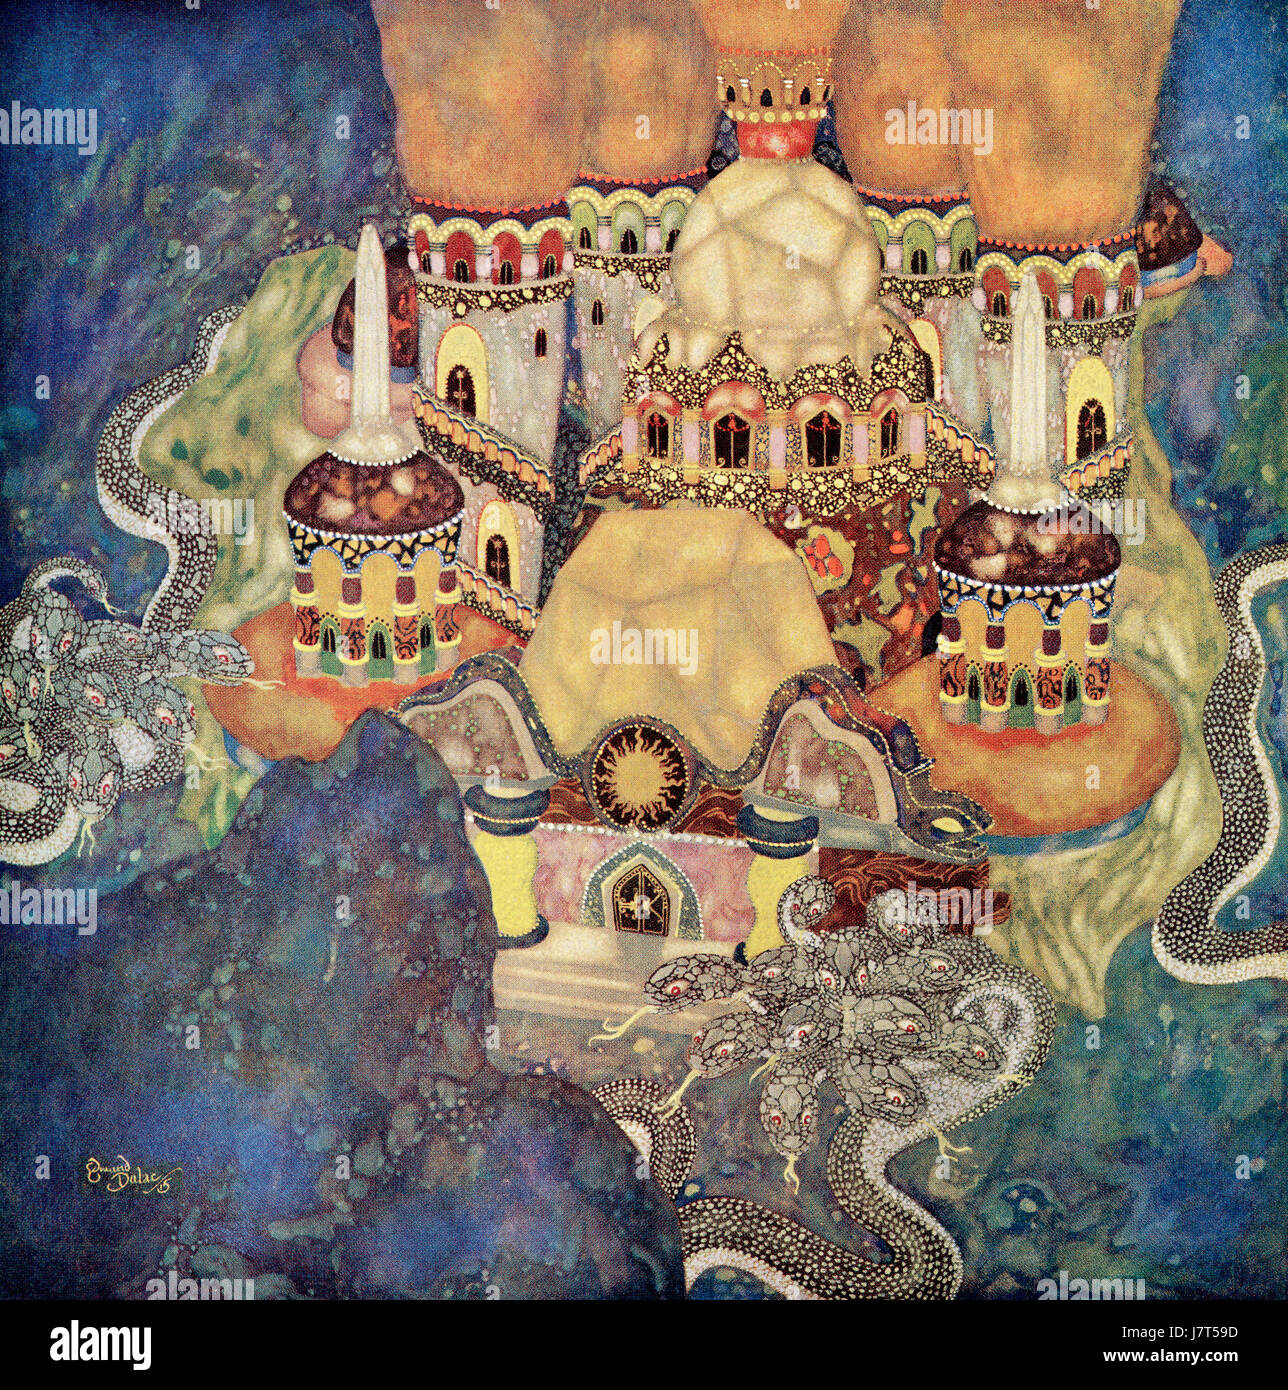 ' The Palace of the Dragon King'.  Illustration from the Serbian fairytale The Story of Bashtchelik.  From - Stock Image